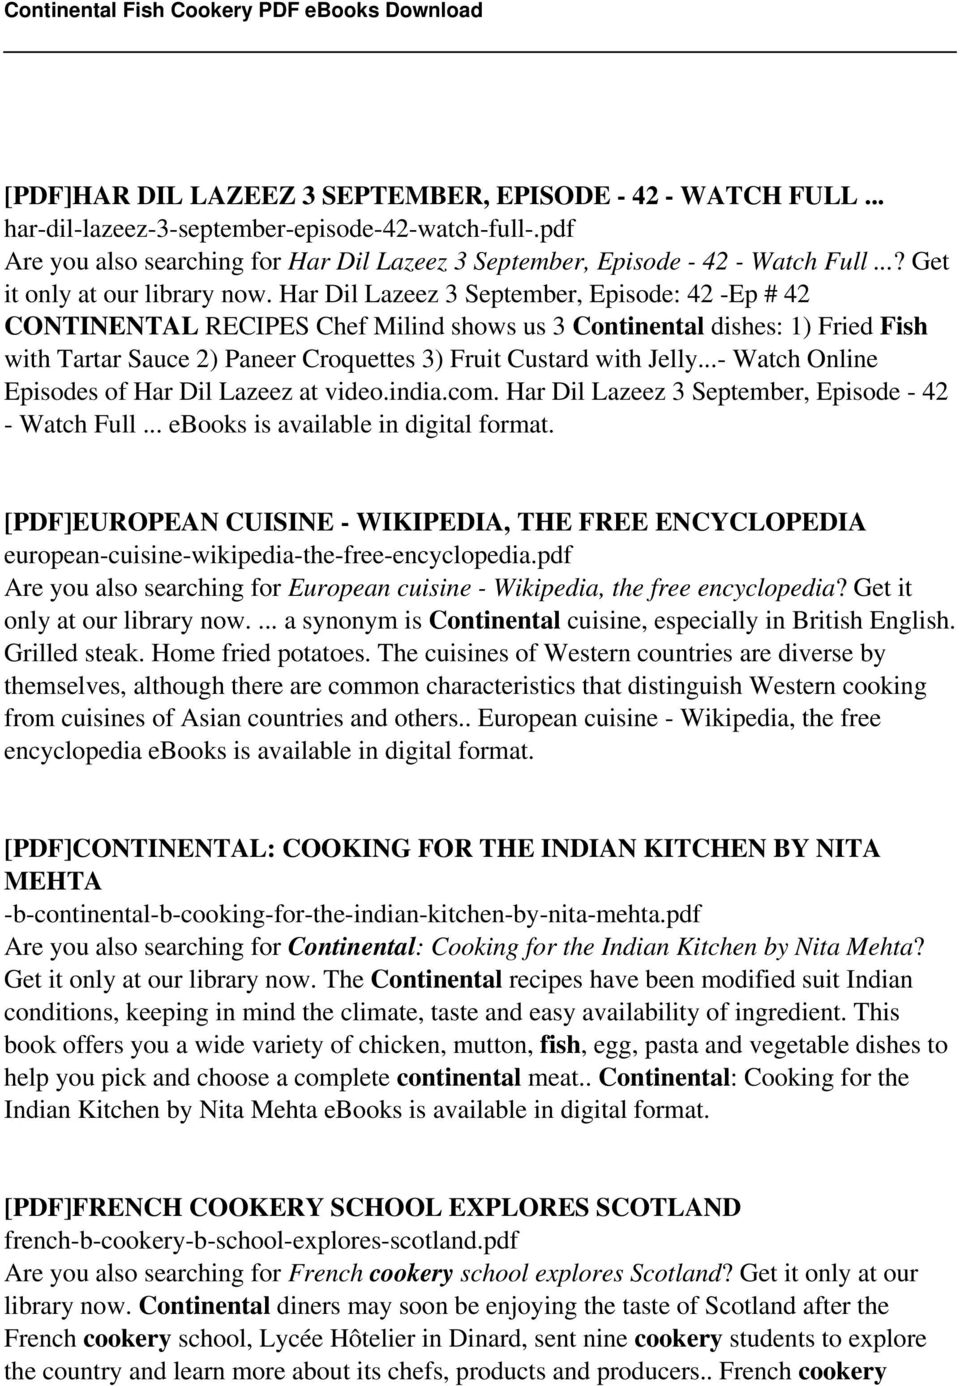 Continental fish cookery pdf pdf har dil lazeez 3 september episode 42 ep 42 continental recipes chef fandeluxe Gallery